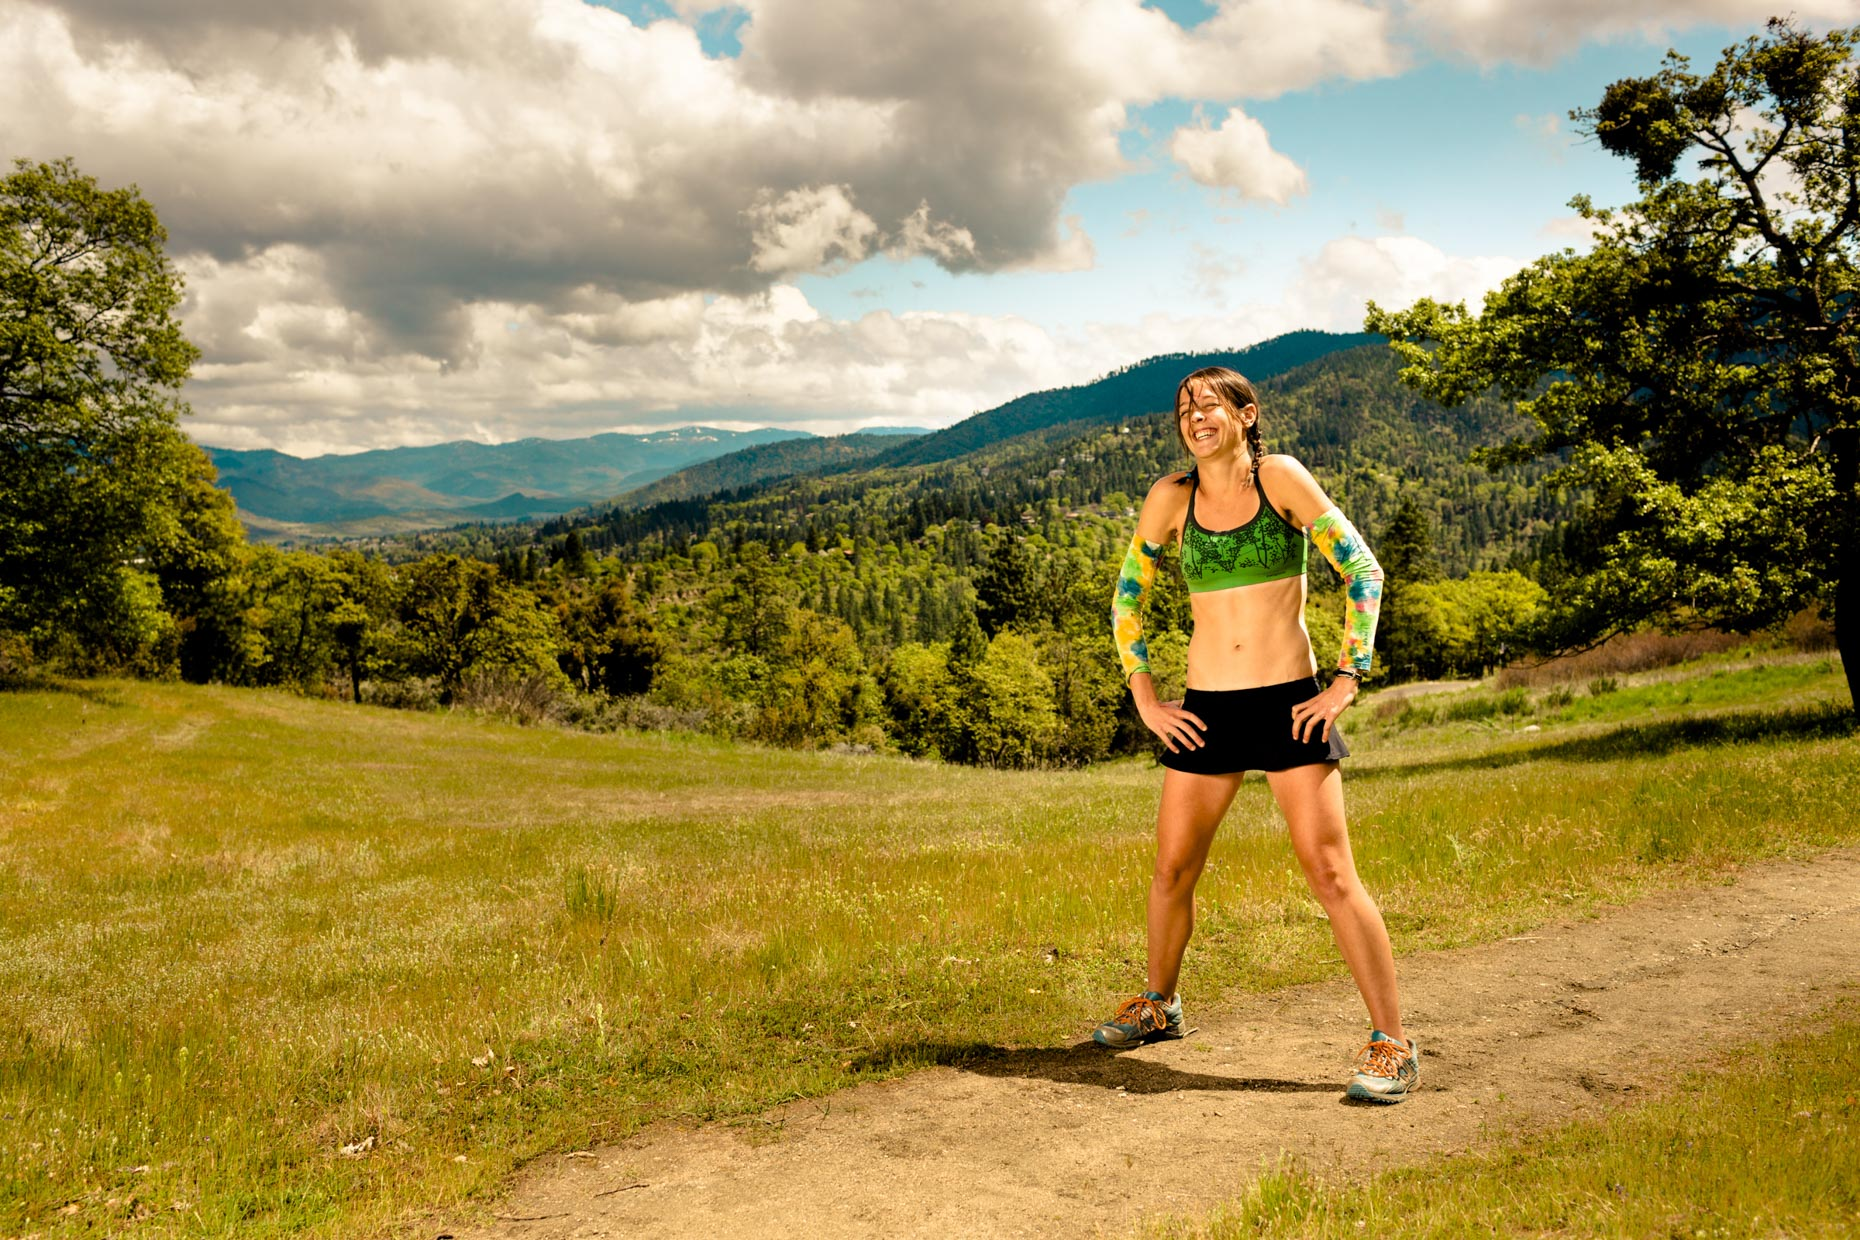 Ultramarathon runner Jenn Shelton for Outside MagazineUltramarathon runner Jenn Shelton is fast, and authentic sports photographer Andy Batt is faster. She drinks hard, fights dirty, and runs 100 trail miles faster than any woman alive. Dramatic sports photographer Andy Batt created heroic portraits and authentic, warm portraits of the speedy racer.